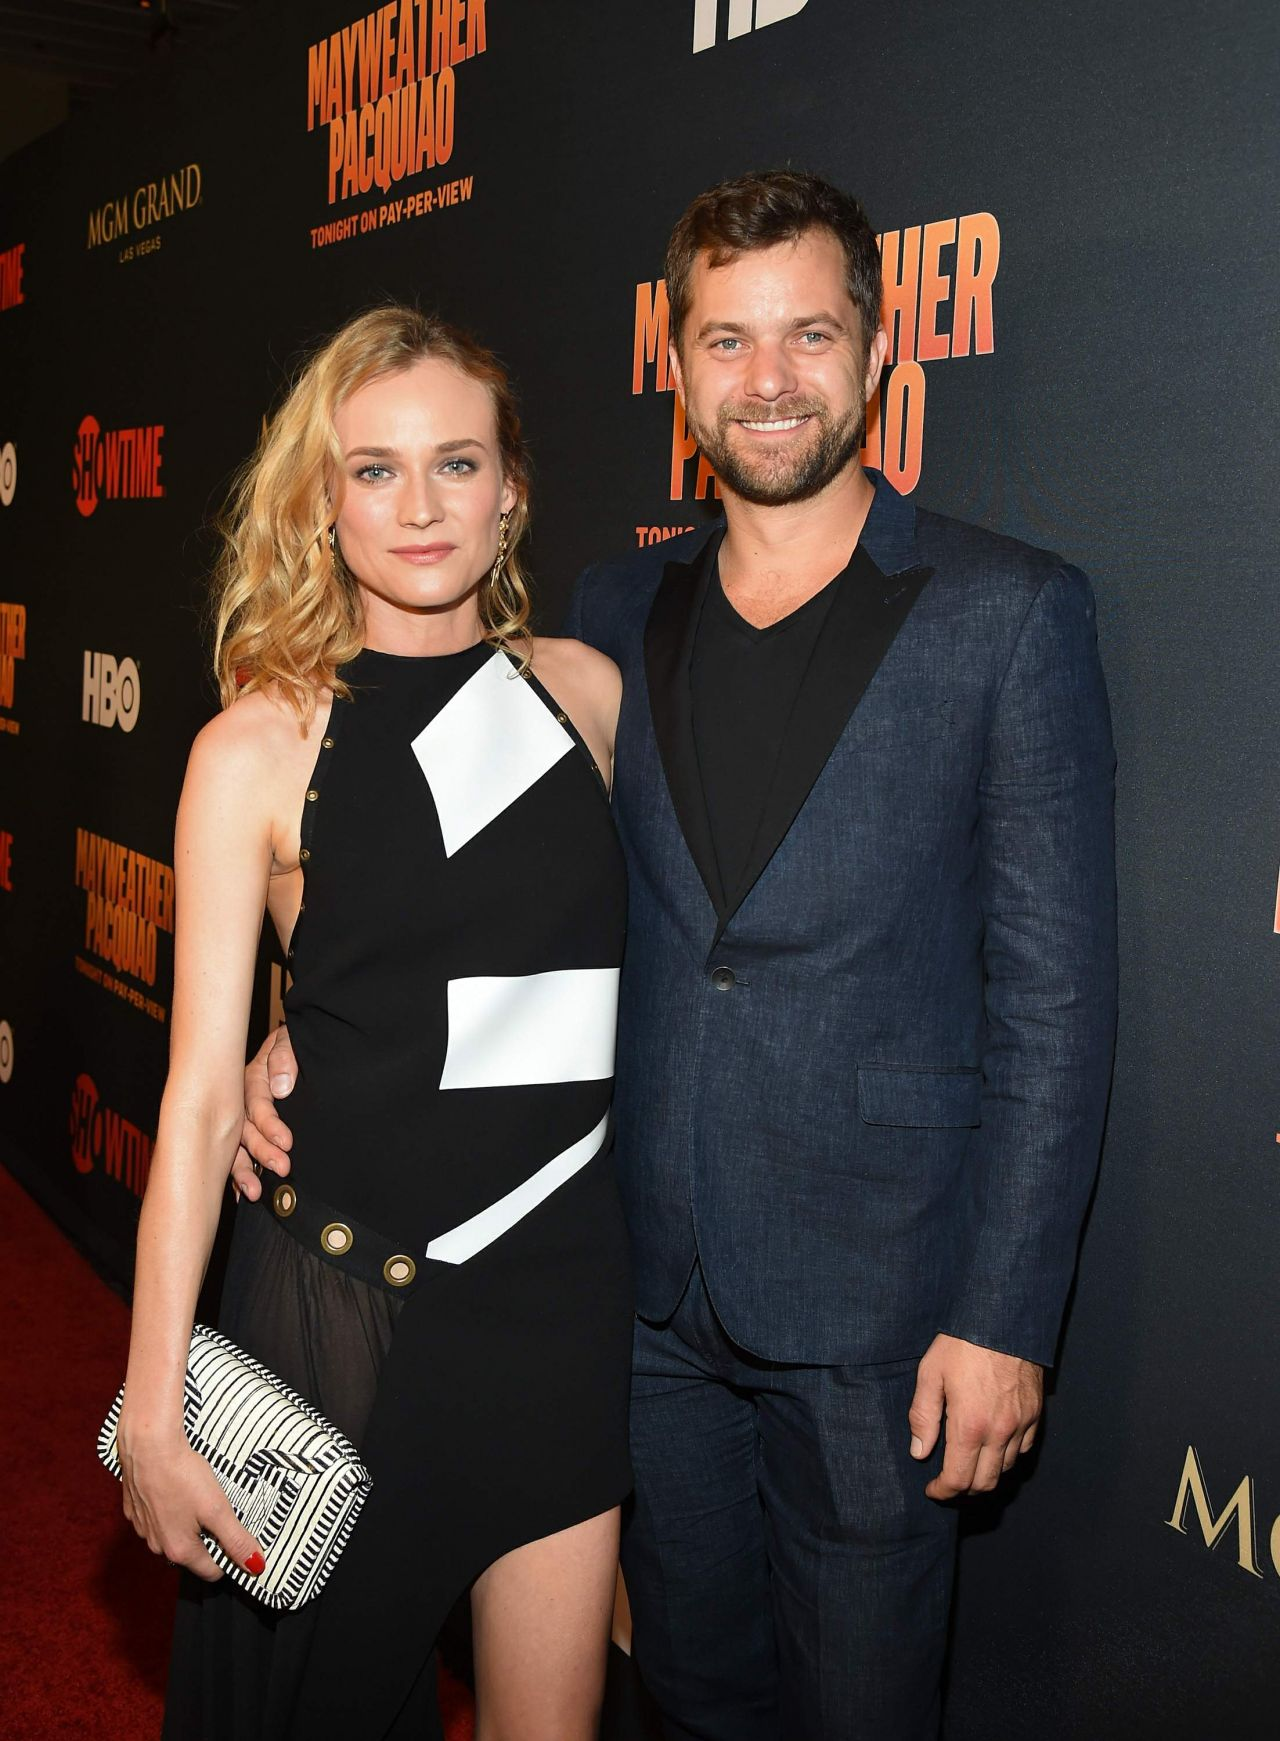 diane-kruger-anthony-vaccarello-mayweather-vs-pacquiao-showtime-hbo-vip-pre-fight-party